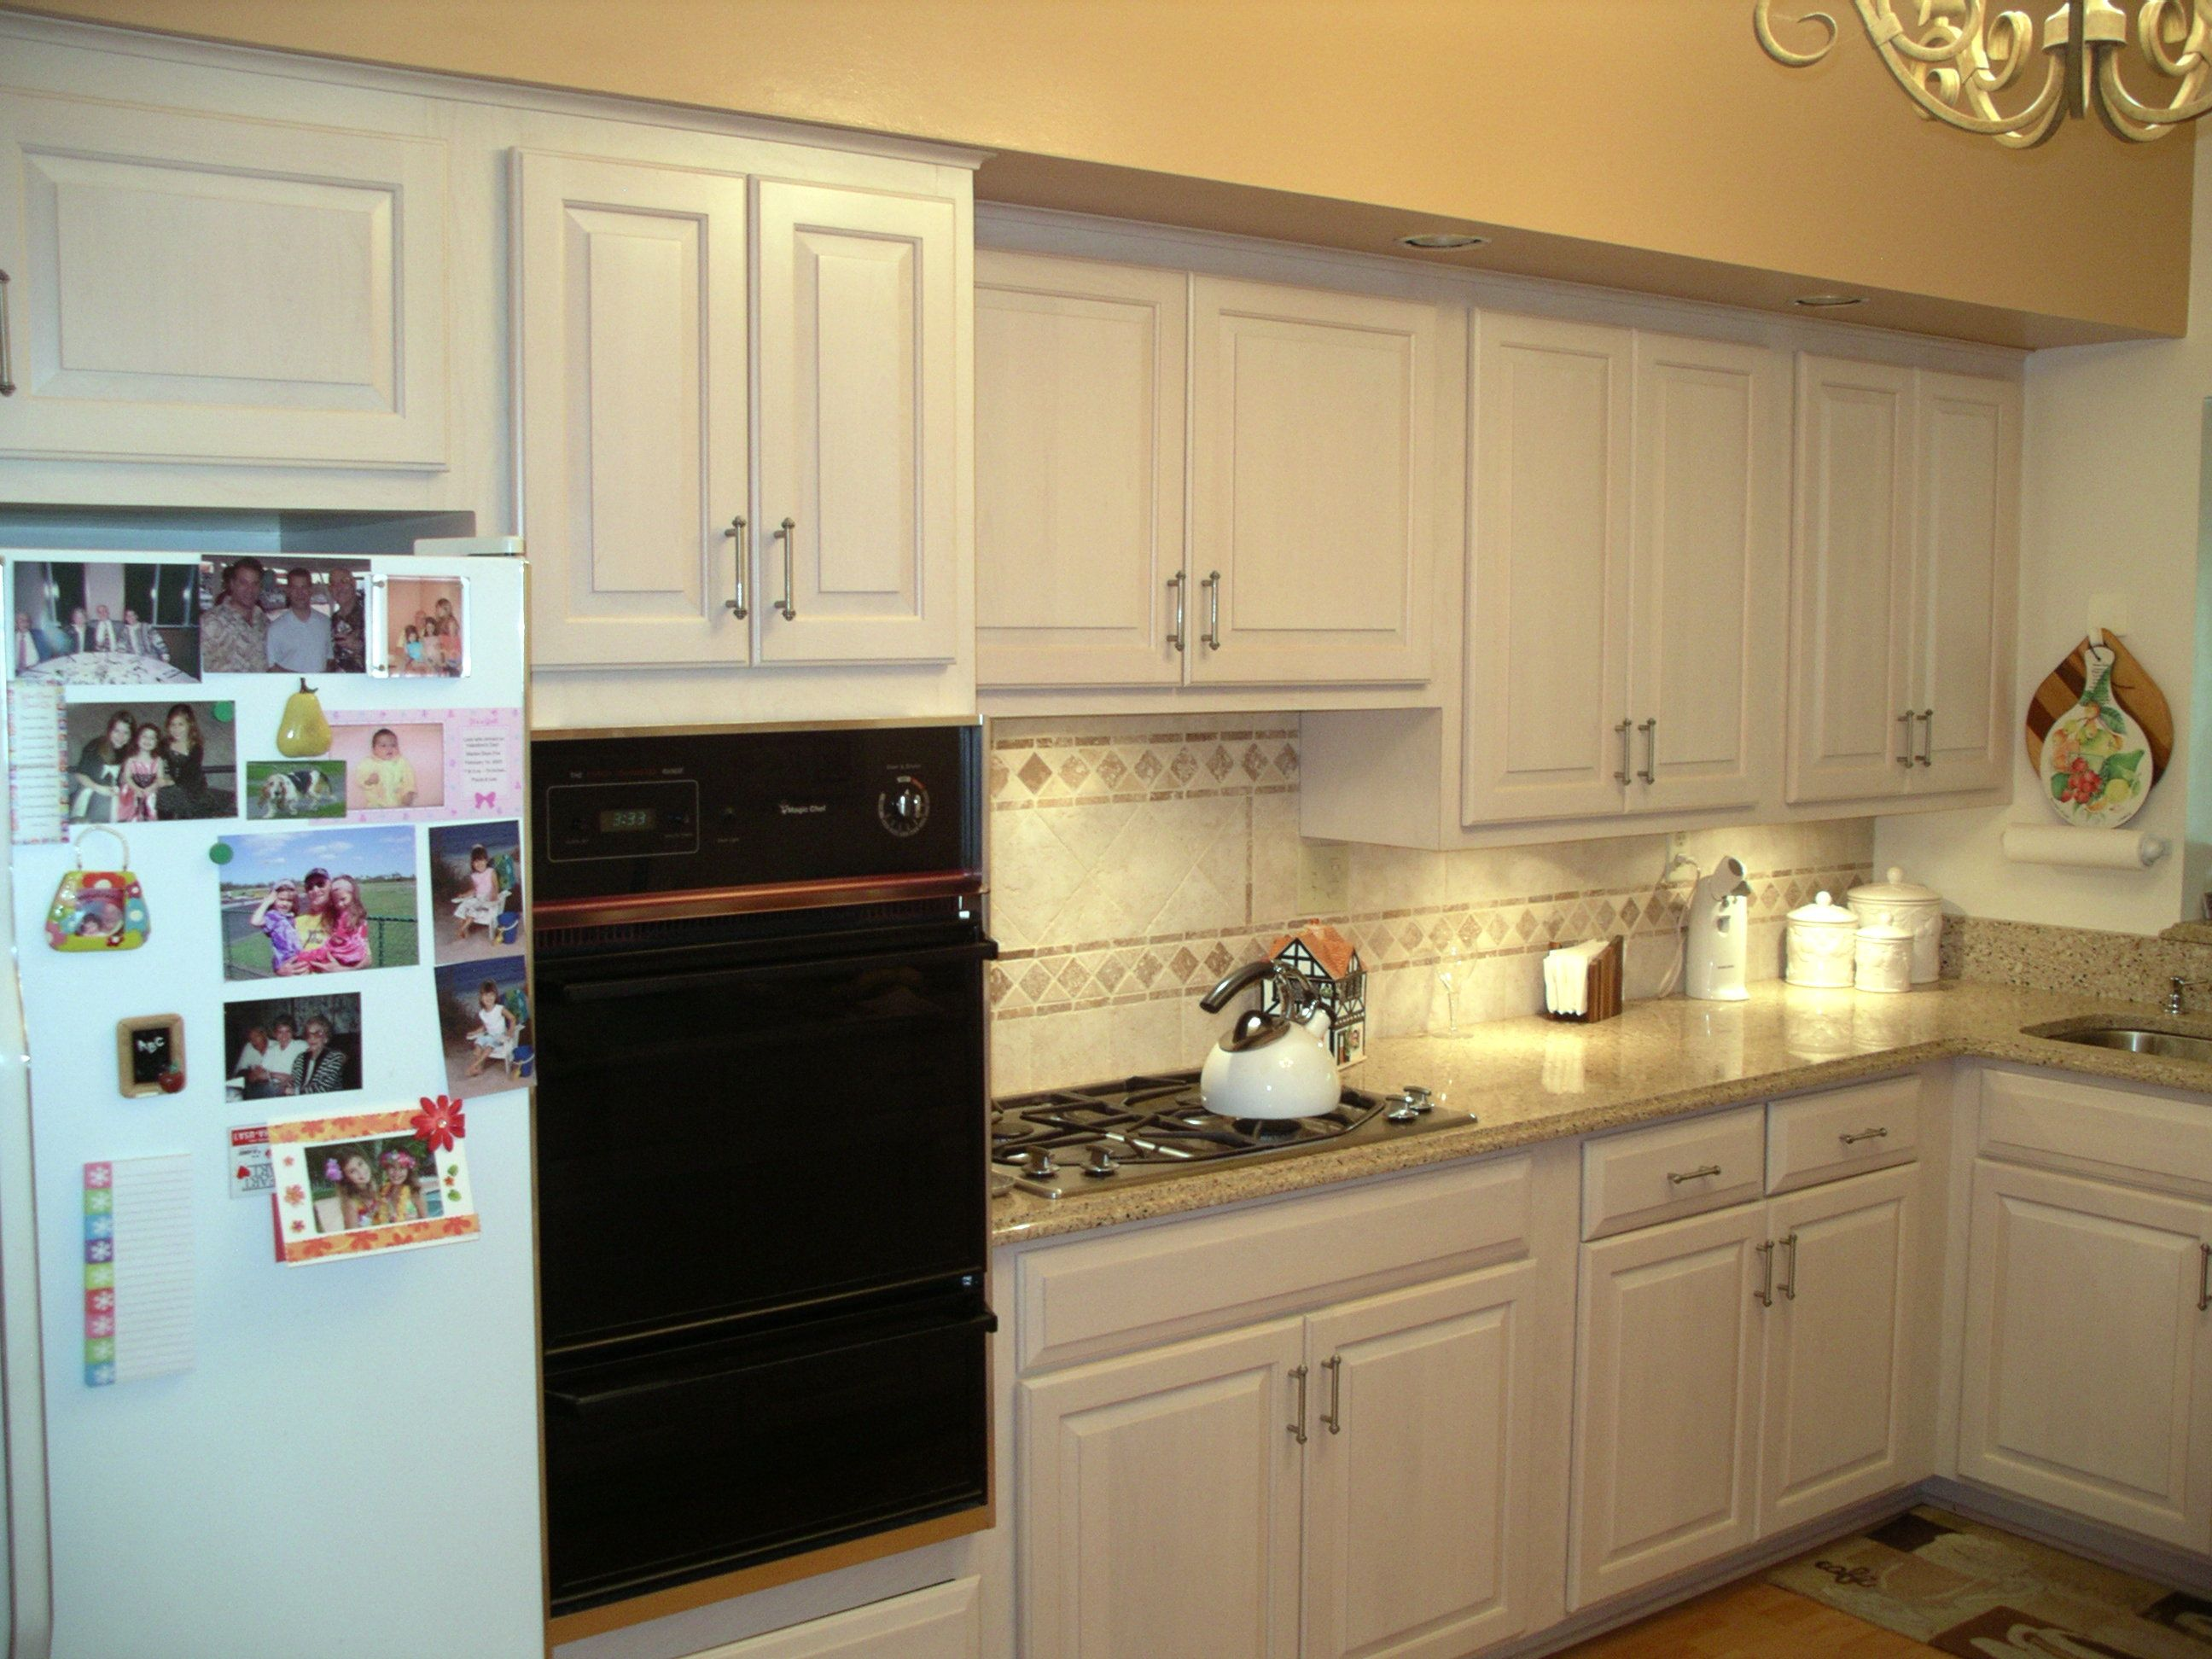 Newly Refaced White Kitchen Cabinets To Brighten Up The Home Kitchen Magic Refacers Kitchen Bathroom Remodel Cabinet Refacing White Kitchen Cabinets